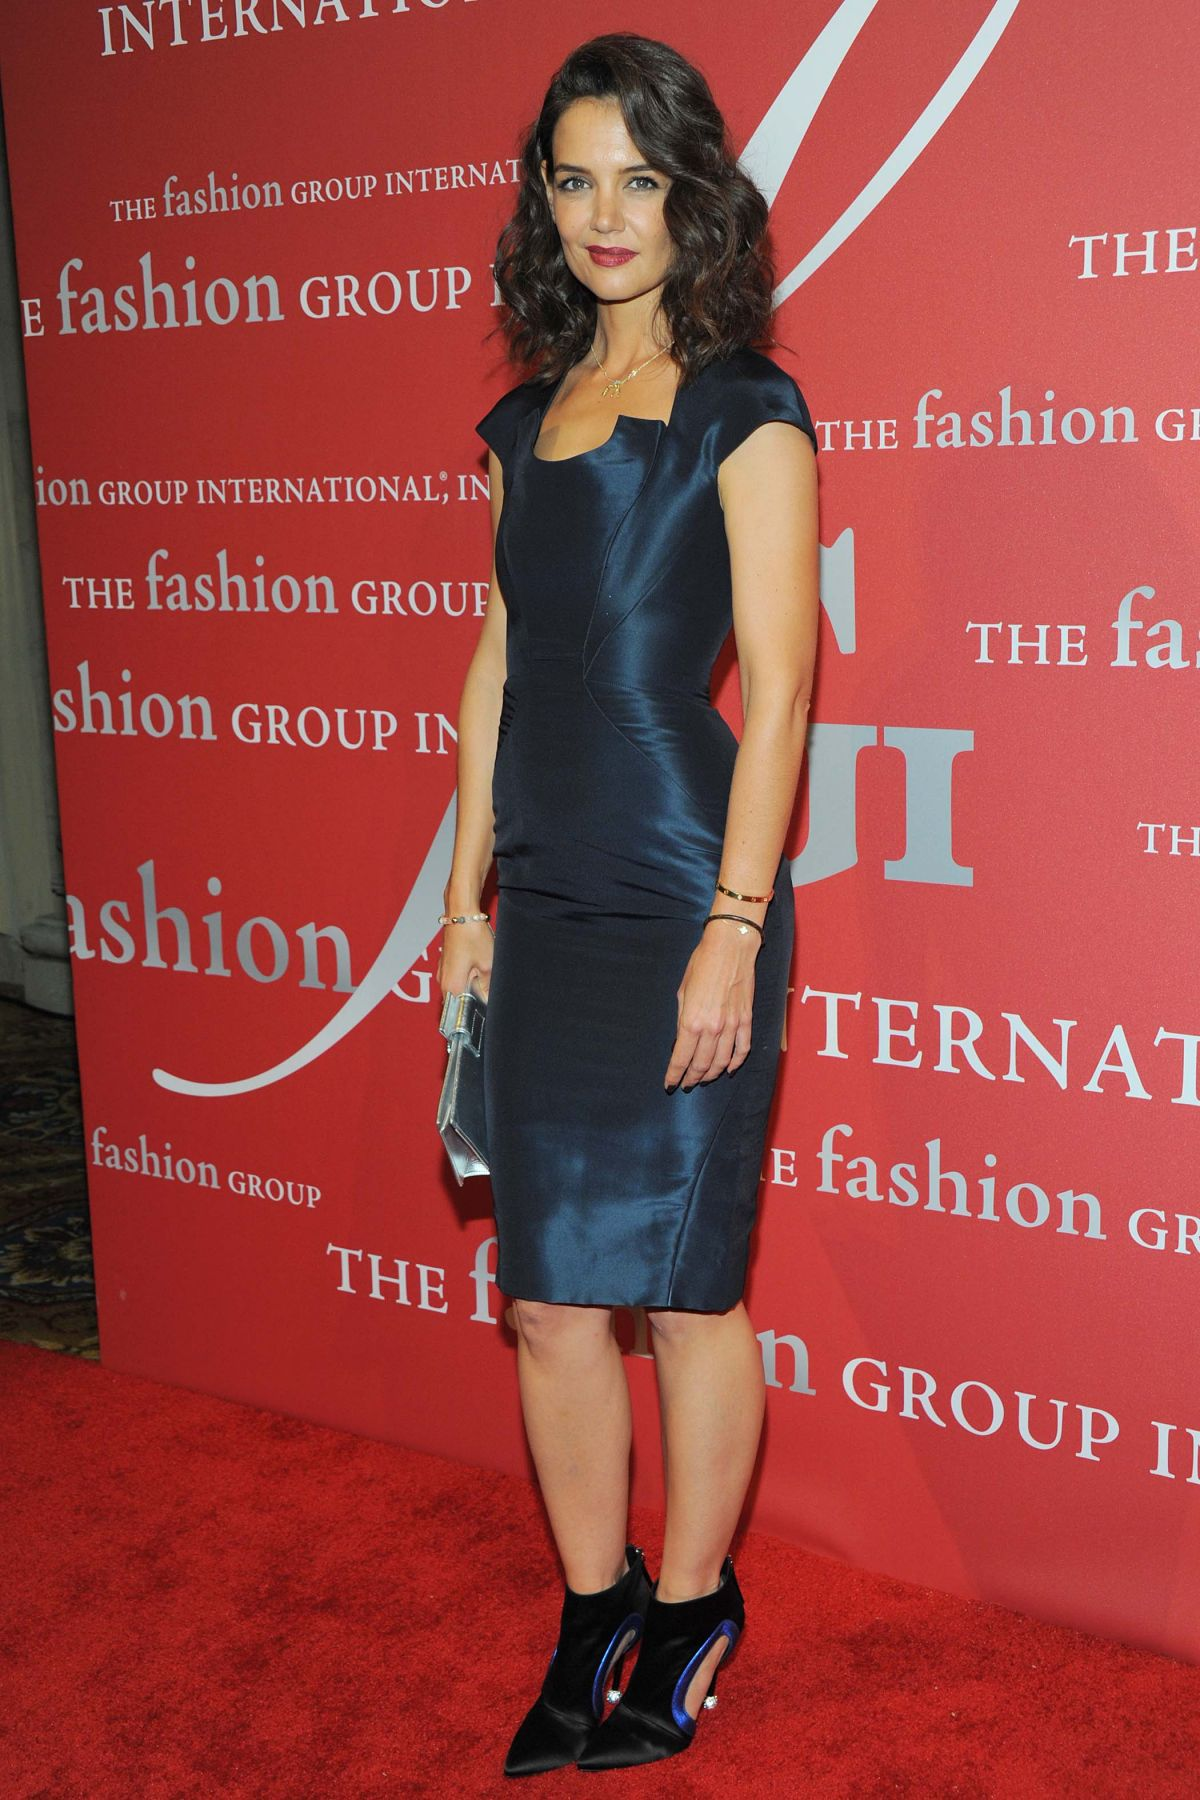 katie-holmes-at-2015-fashion-group-international-night-of-stars-gala-in-new-york-10-22-2015_8